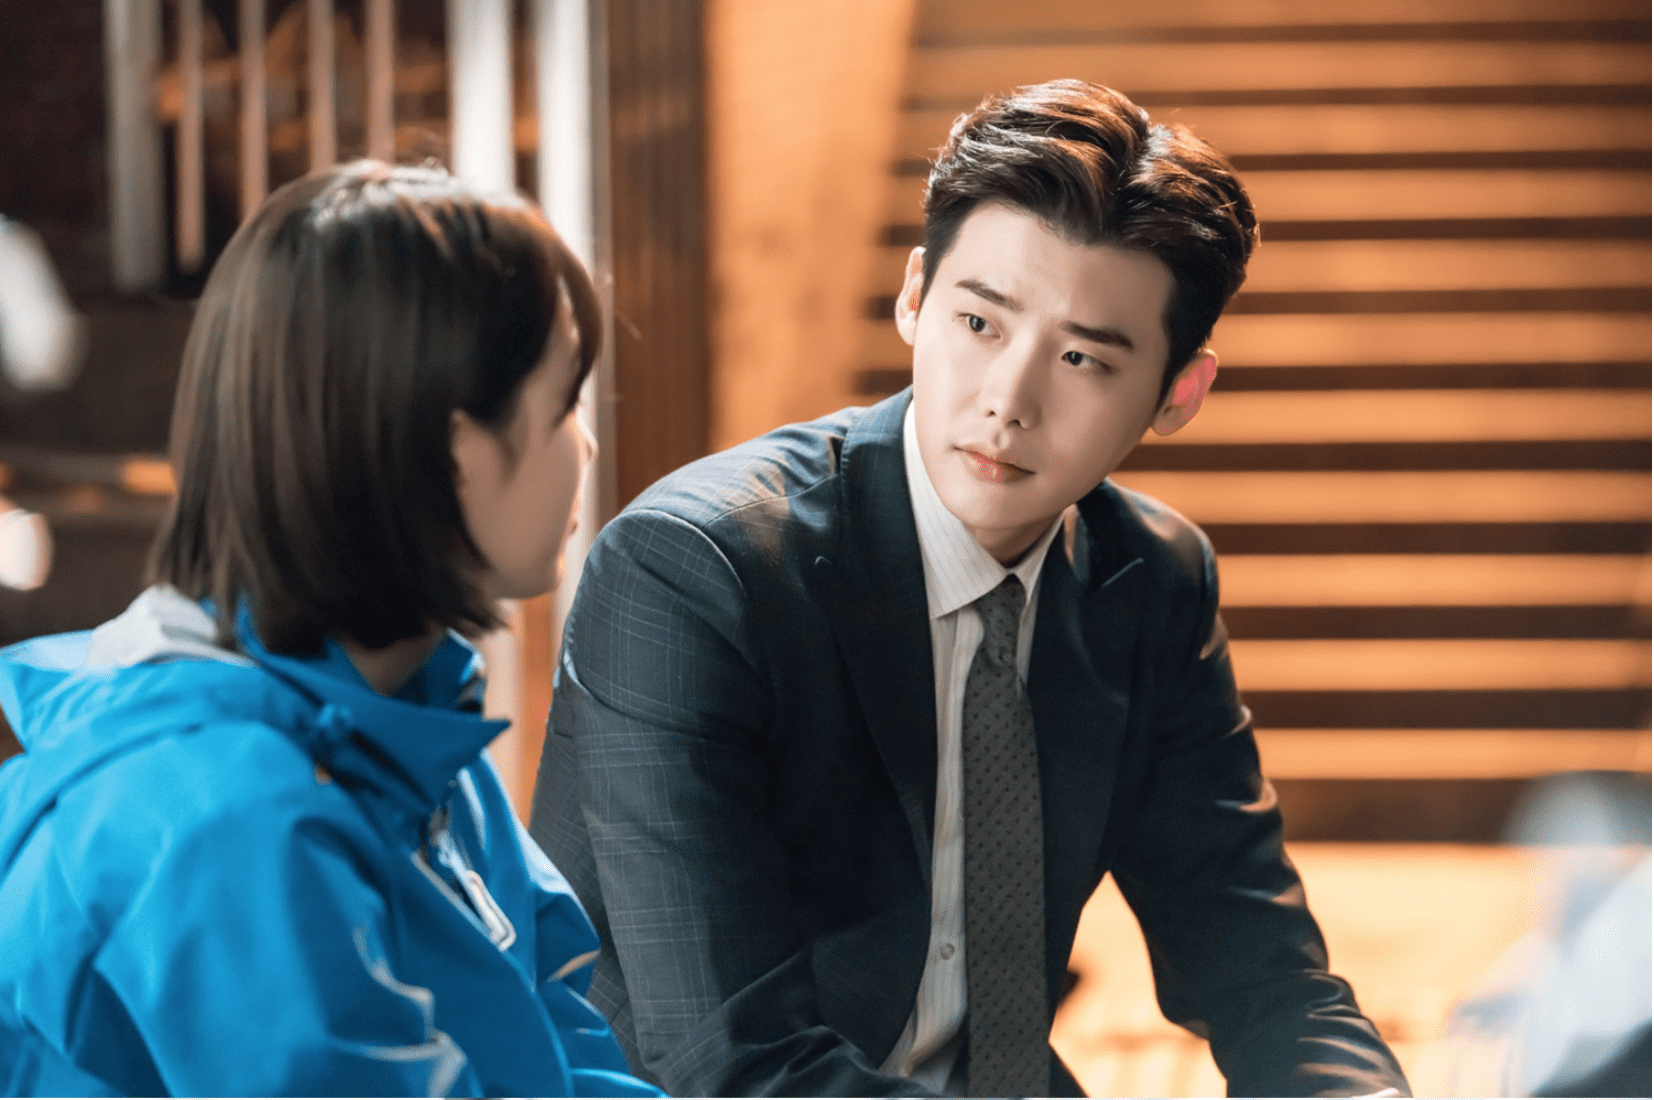 """Lee Jong Suk Cozies Up To Kim Won Hae And Confers With Suzy In New Stills For """"While You Were Sleeping"""""""